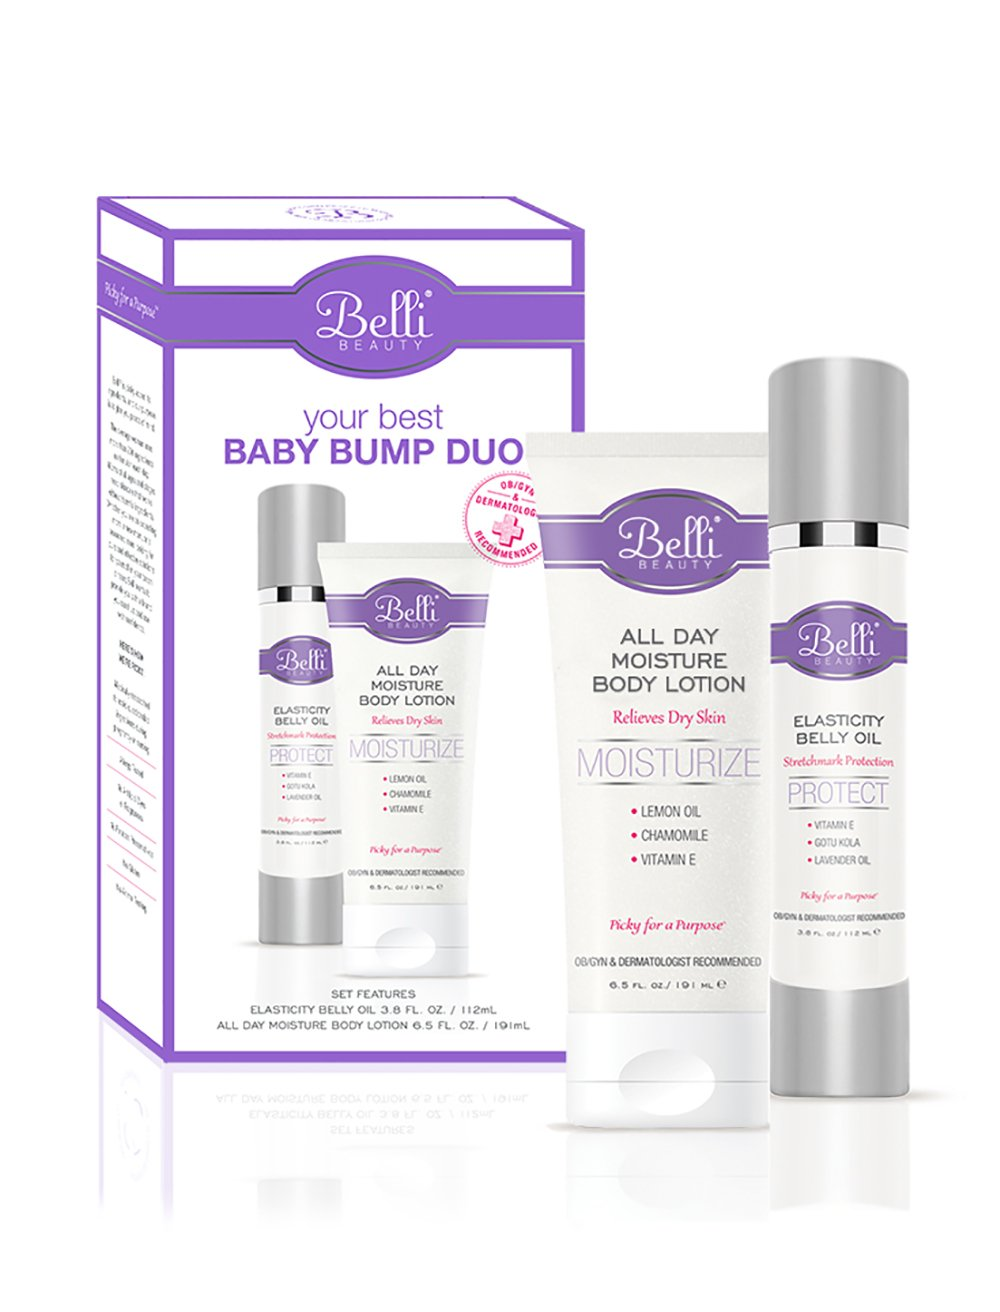 Belli Your Best Baby Bump Duo – Safeguard Against the appearance of Stretch marks and comfort dry skin with Elasticity Belly Oil and All Day Moisture Body Lotion